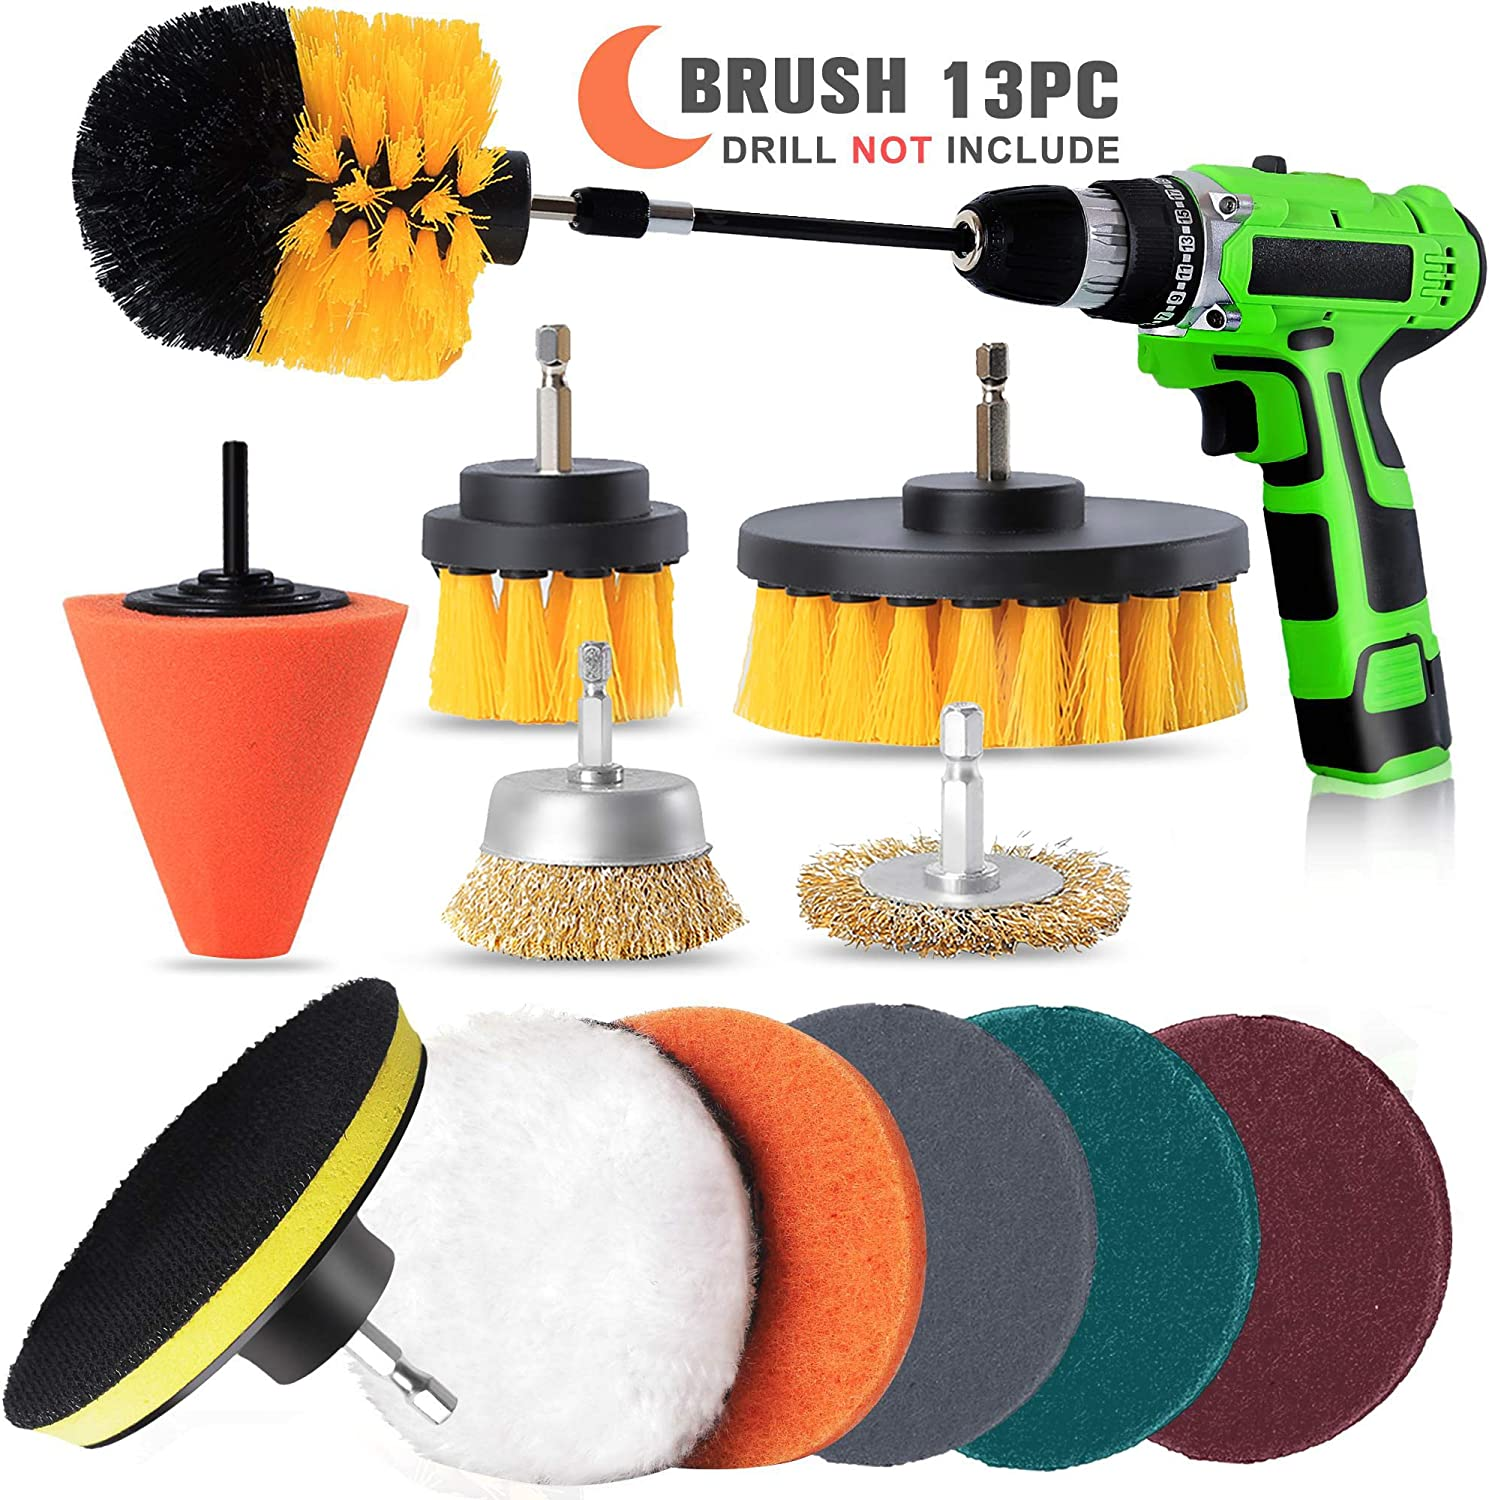 Grout Bathroom Drill Brush Attachment set 13pcs Floor Kitchen,Derusting Tiles power scrubber with additional wire and conical brushes for Cars Sinks Bathtub Grill